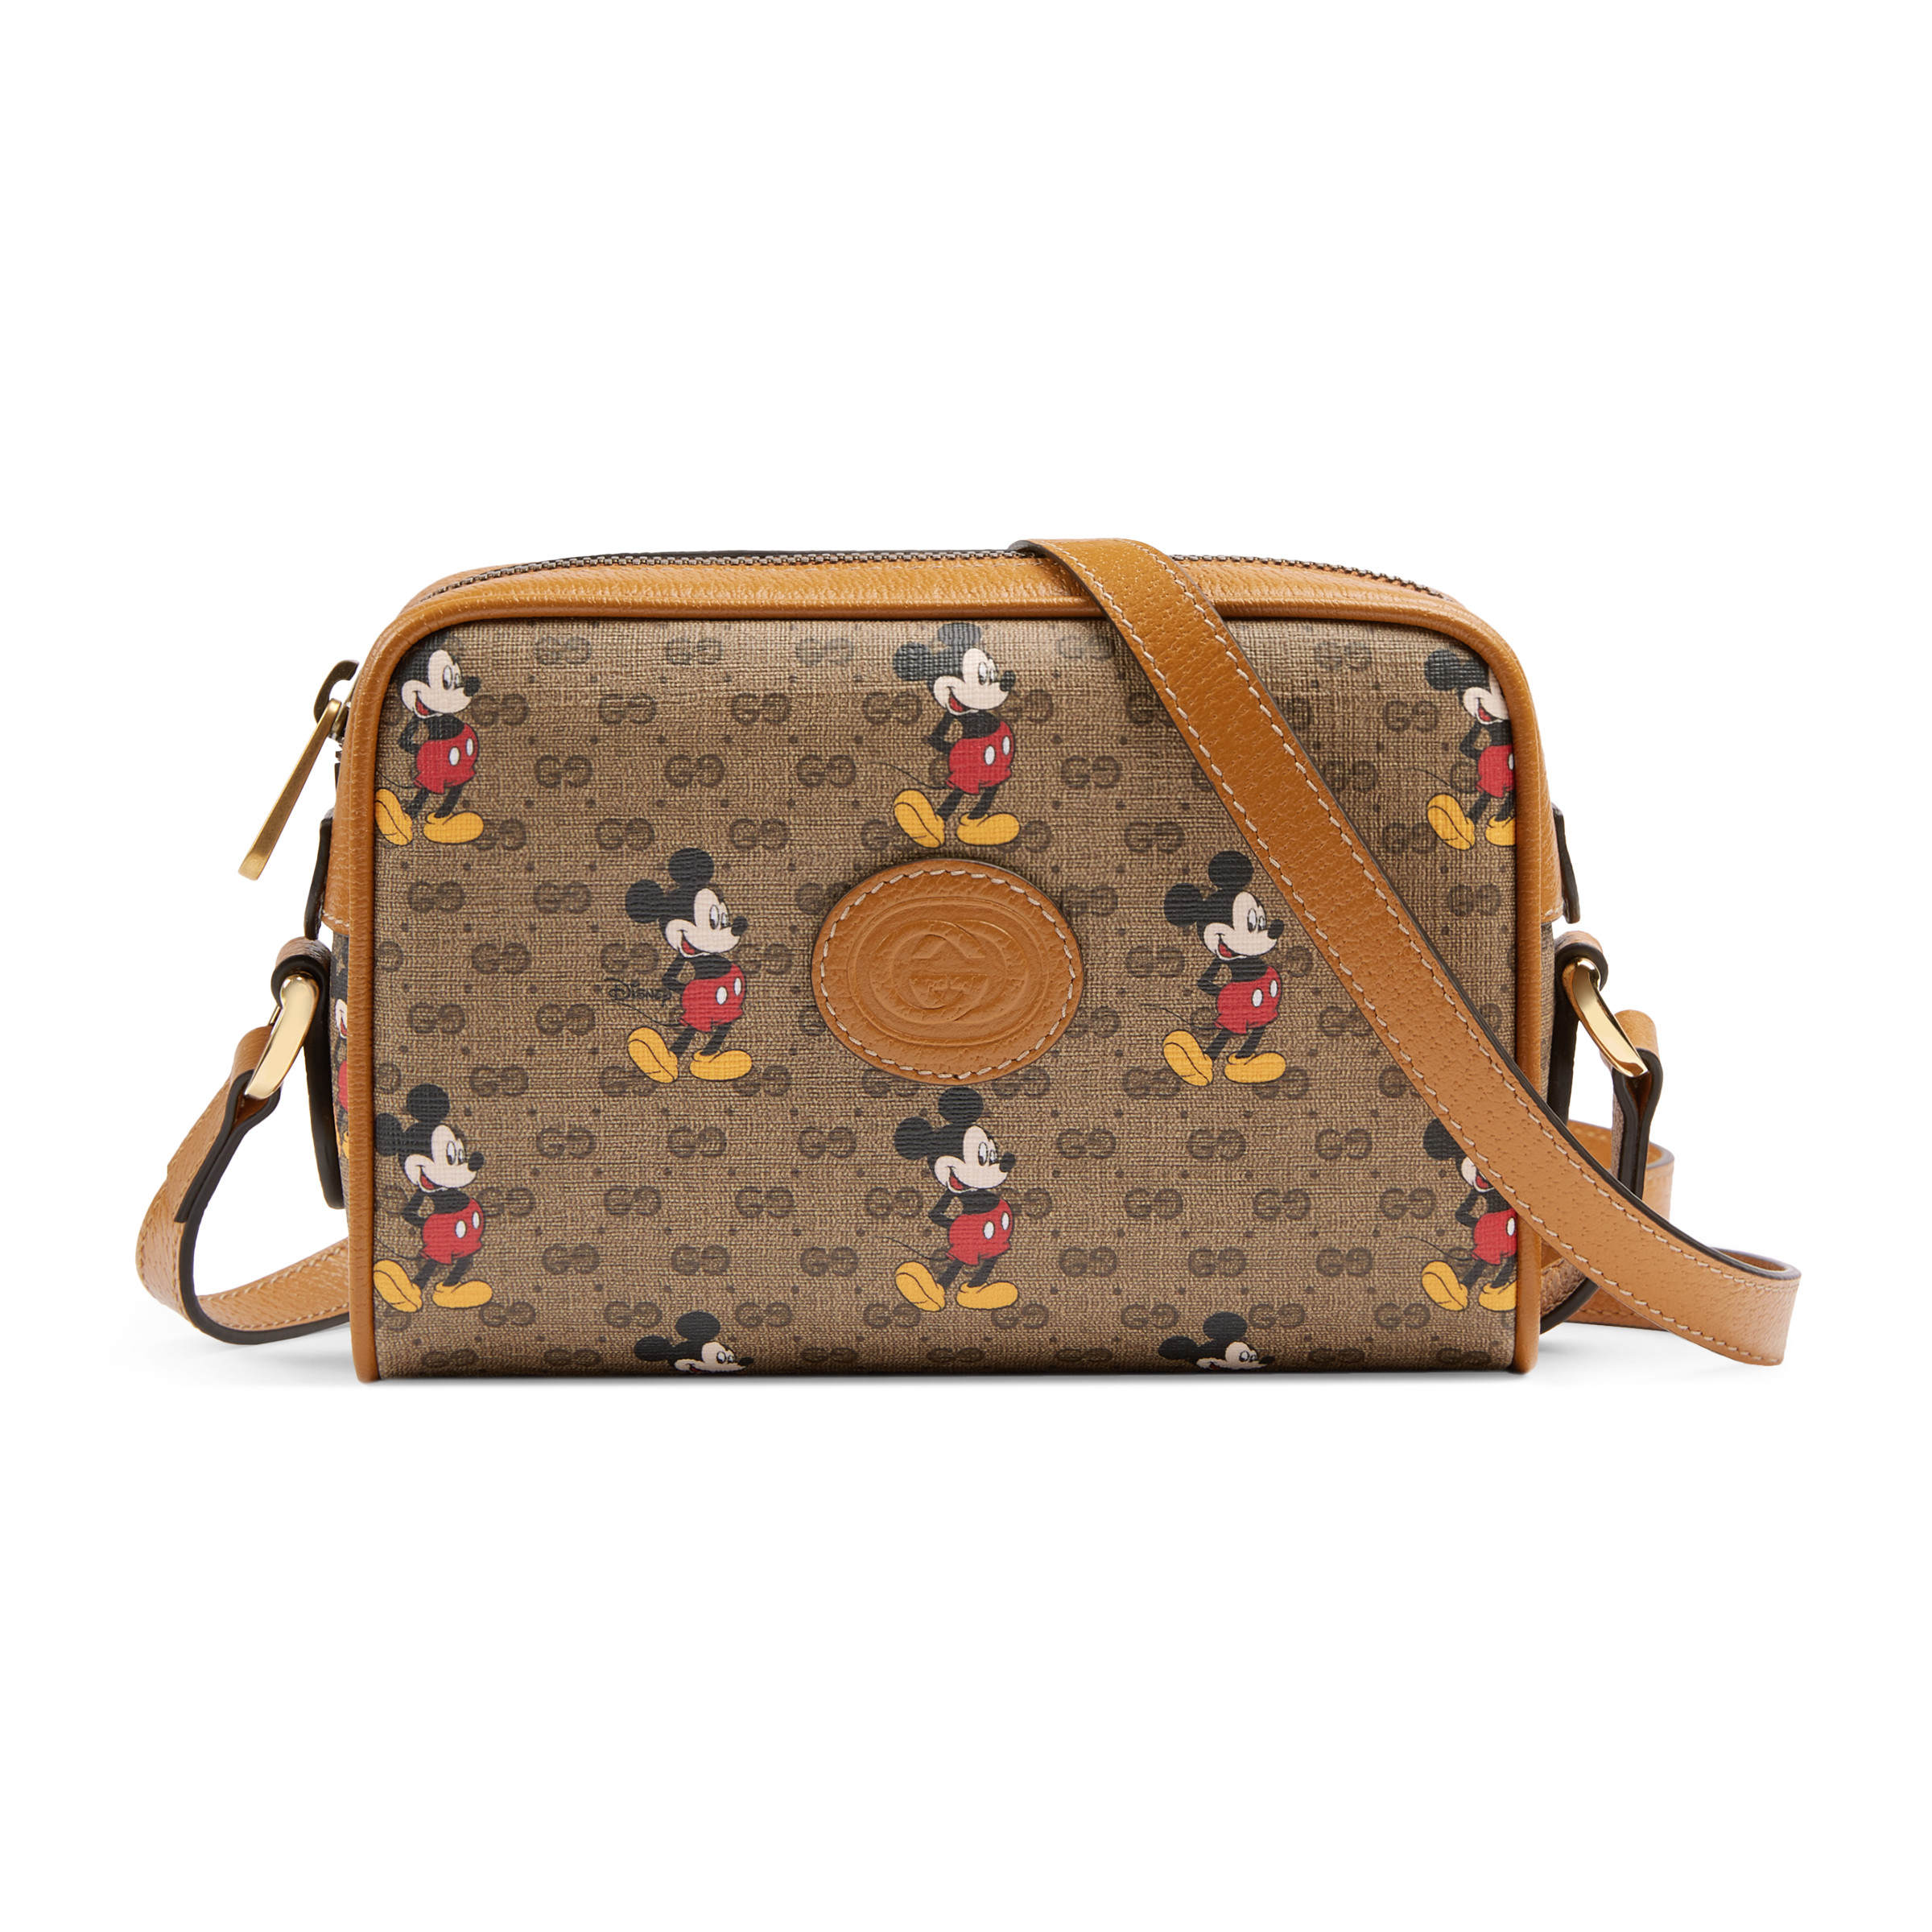 Disney x Gucci shoulder bag